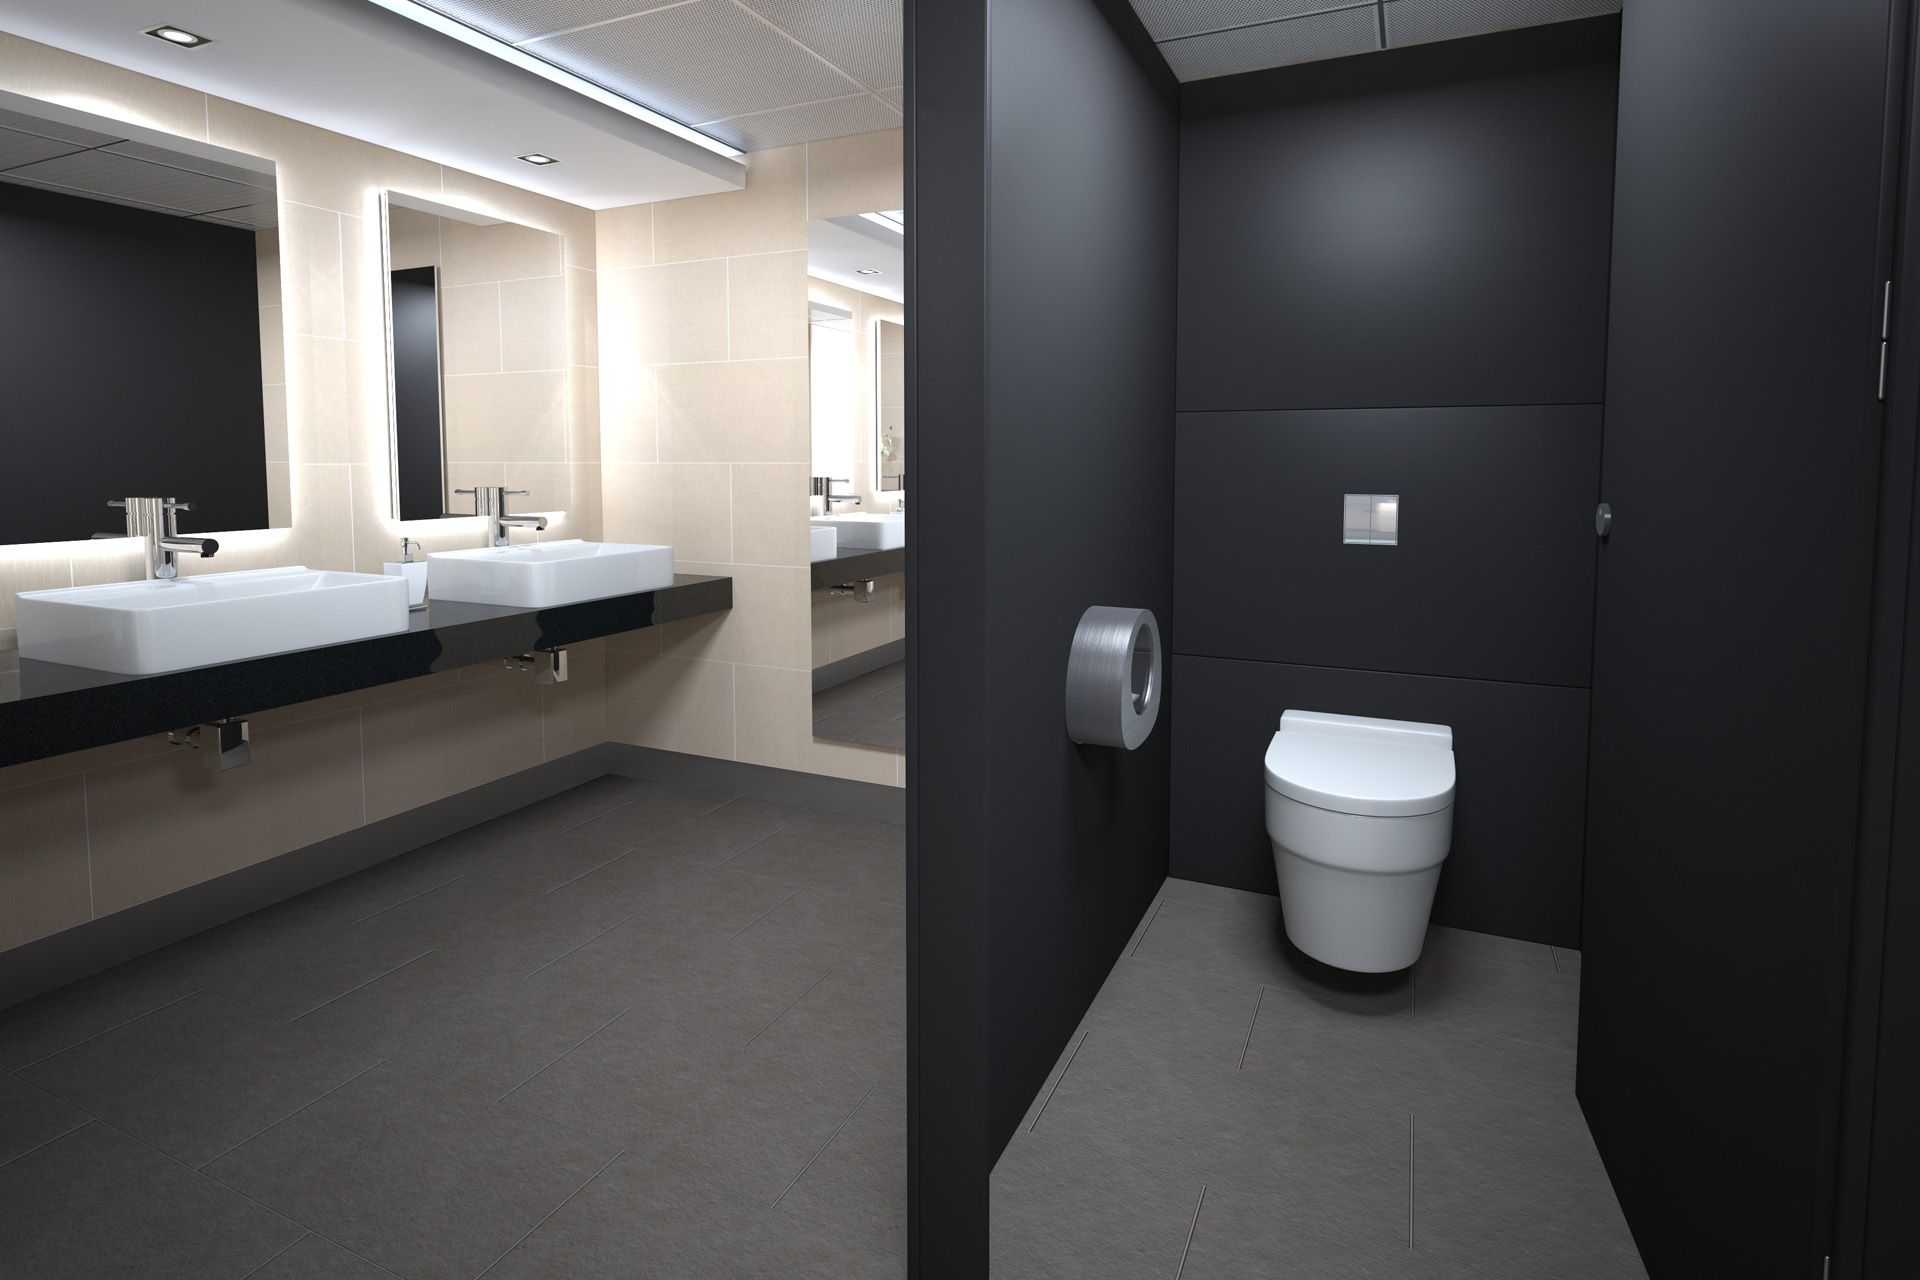 Office Bathroom Design Images For U003e Office Toilet Design | Bathroom |  Pinterest | Toilet